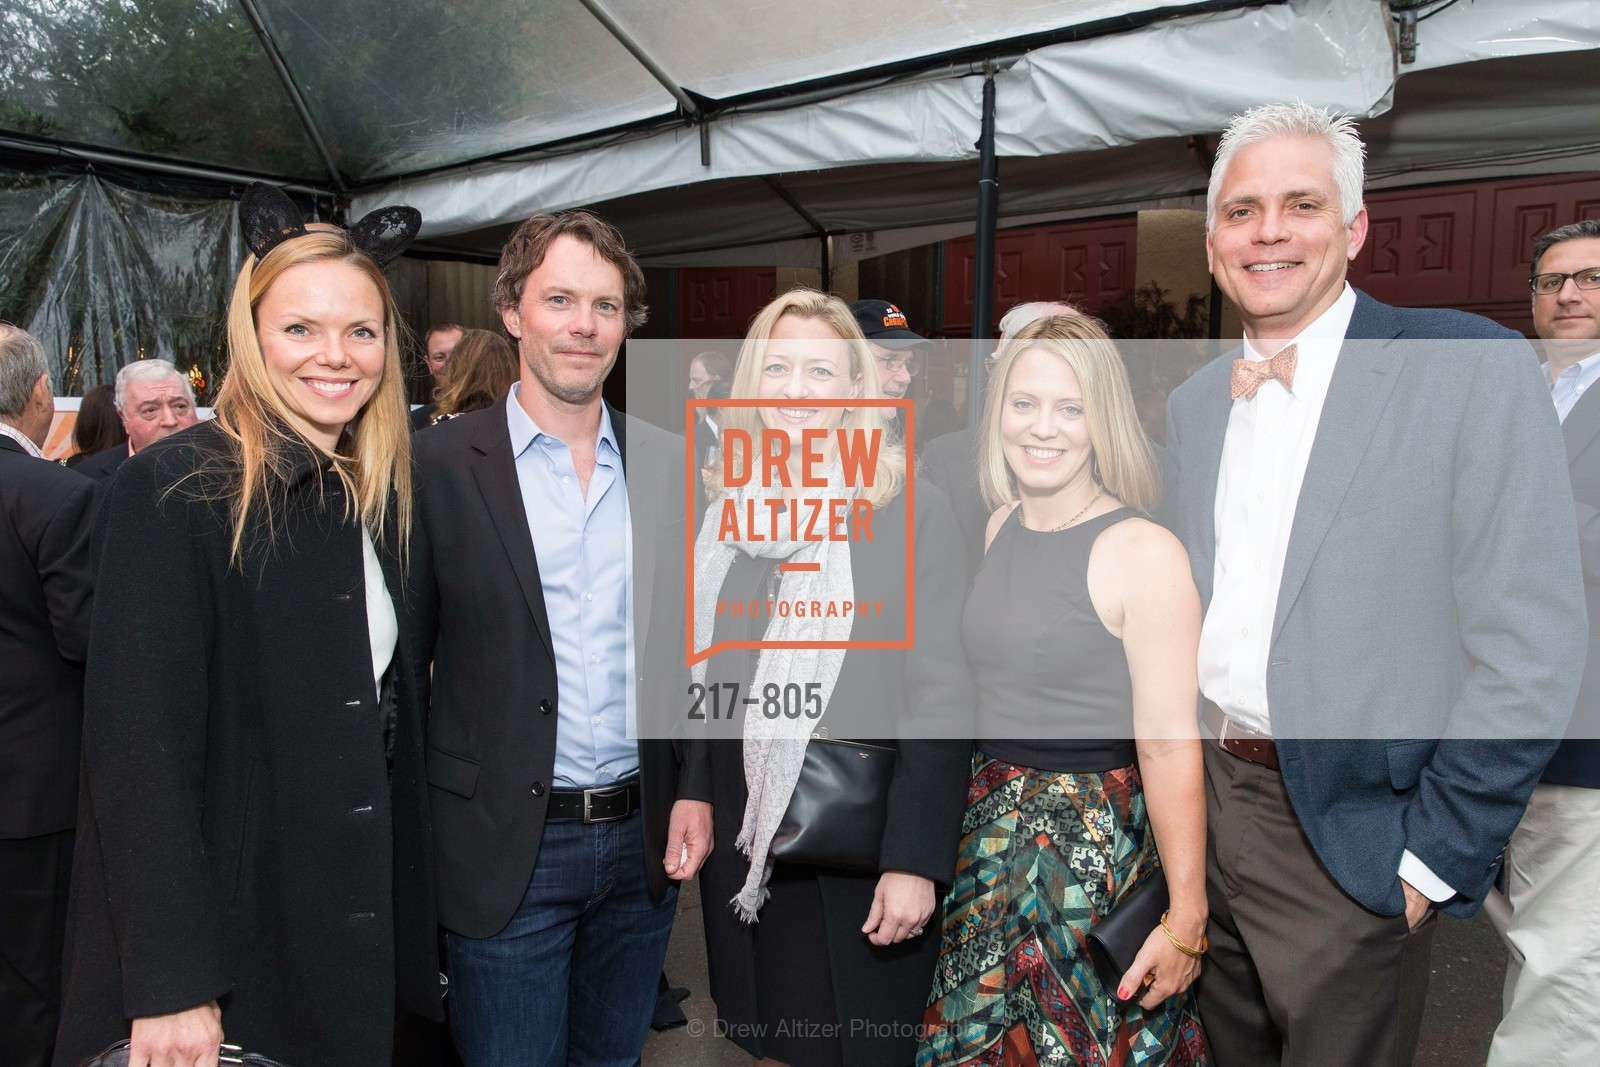 Veronica Krivkovich, Brian Melton, Emily Melton, Alexis Krivkovich, Tim Gallagher, ZOOFEST 2015, US, April 26th, 2015,Drew Altizer, Drew Altizer Photography, full-service agency, private events, San Francisco photographer, photographer california